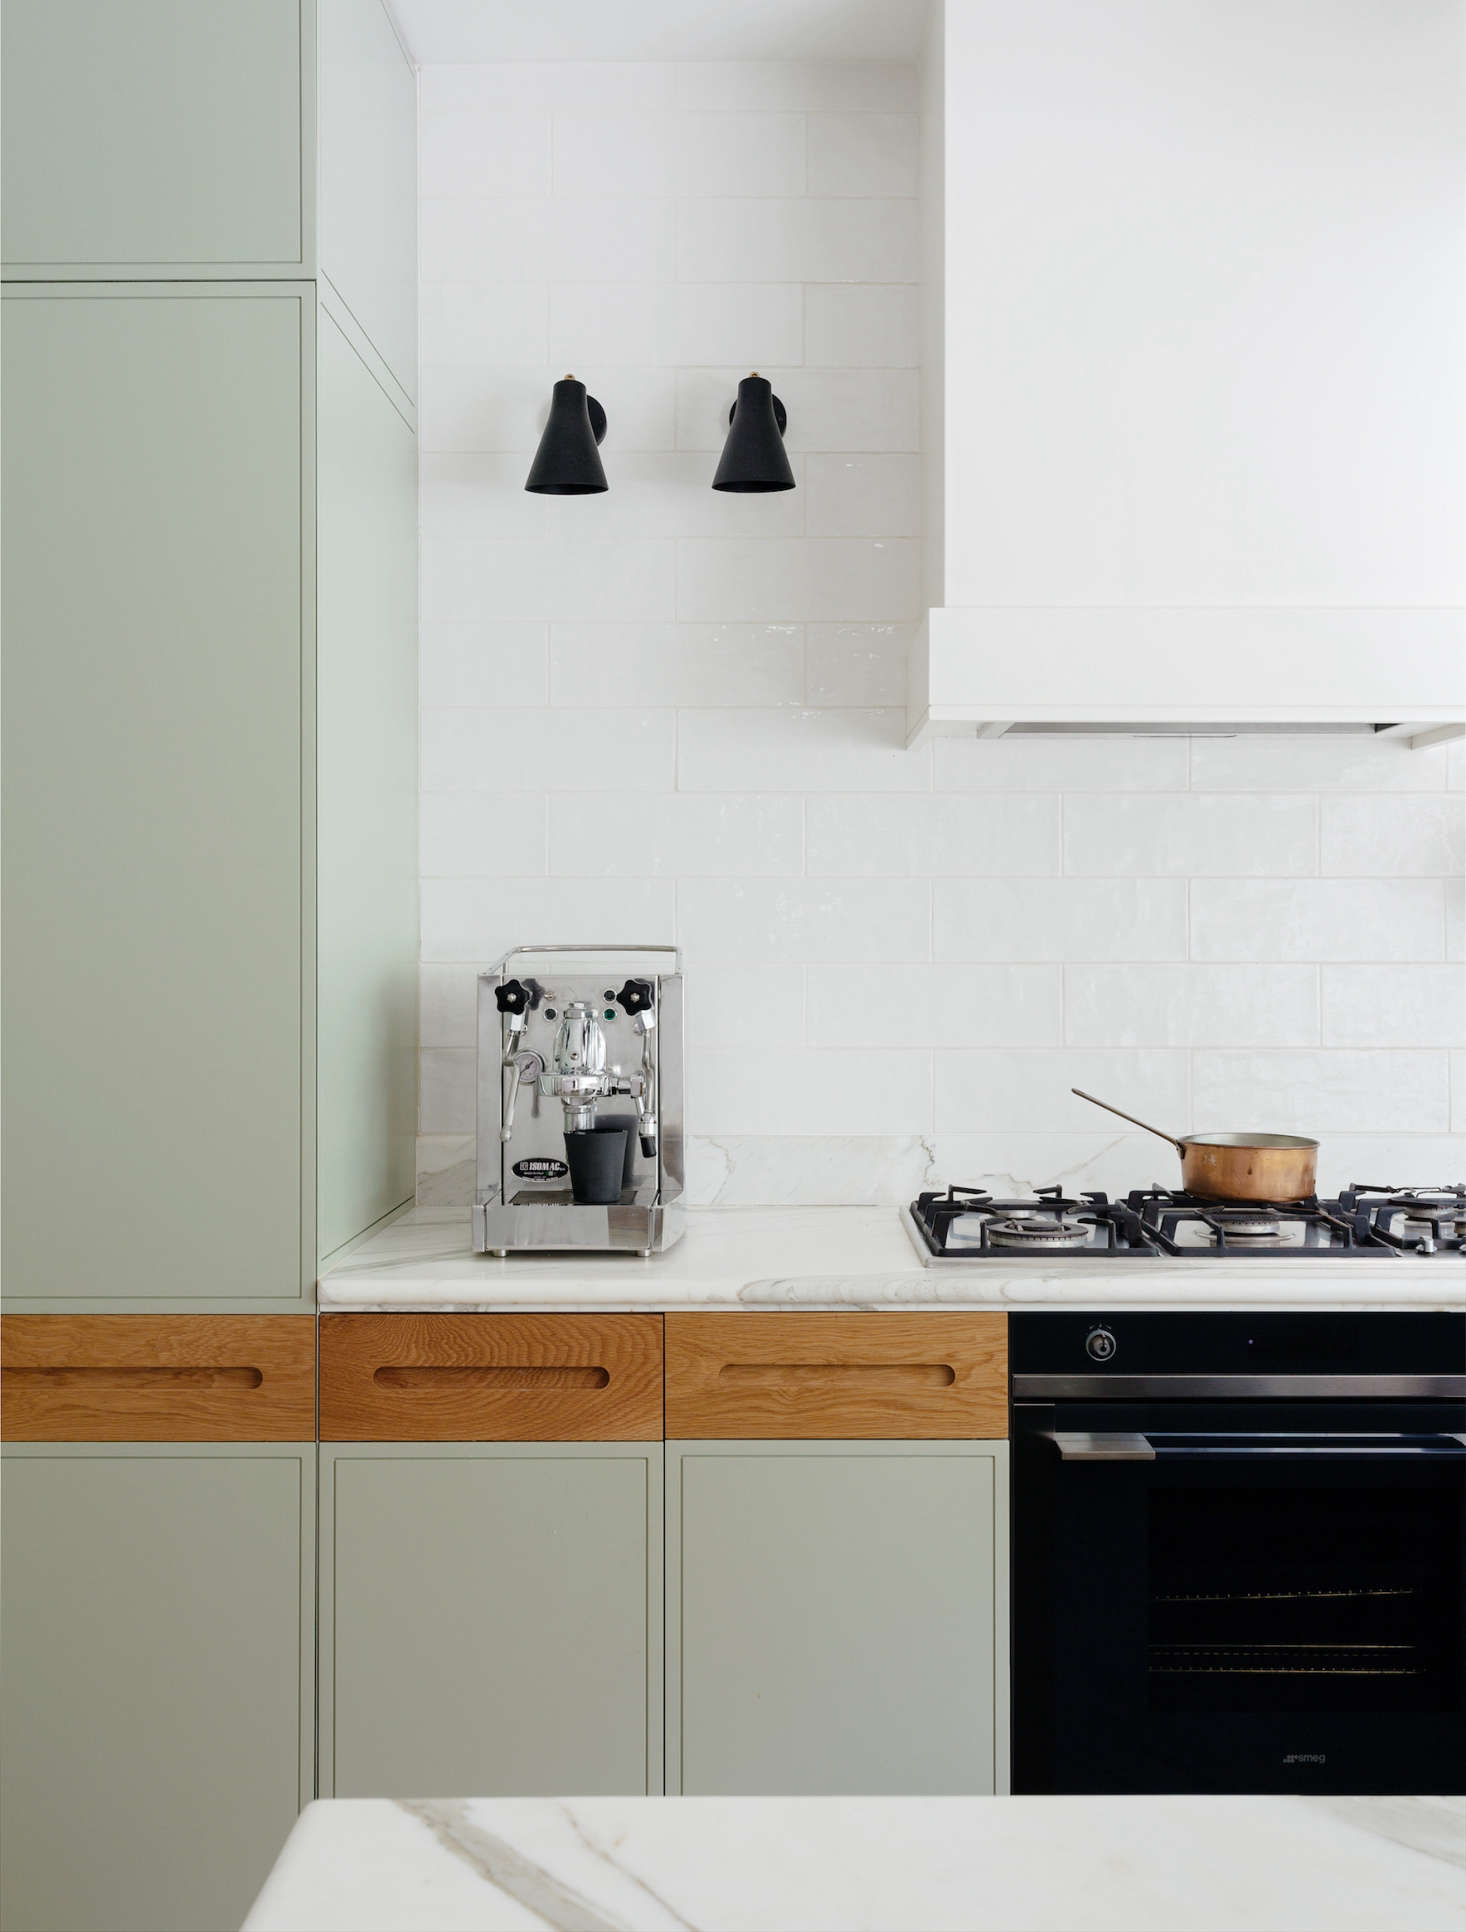 A clean and fresh-looking kitchen remodel with custom sage cabinets and oak pulls, Calacatta marble counters, and handmade subway tiles by interior designers Arent & Pyke of Sydney | Remodelista